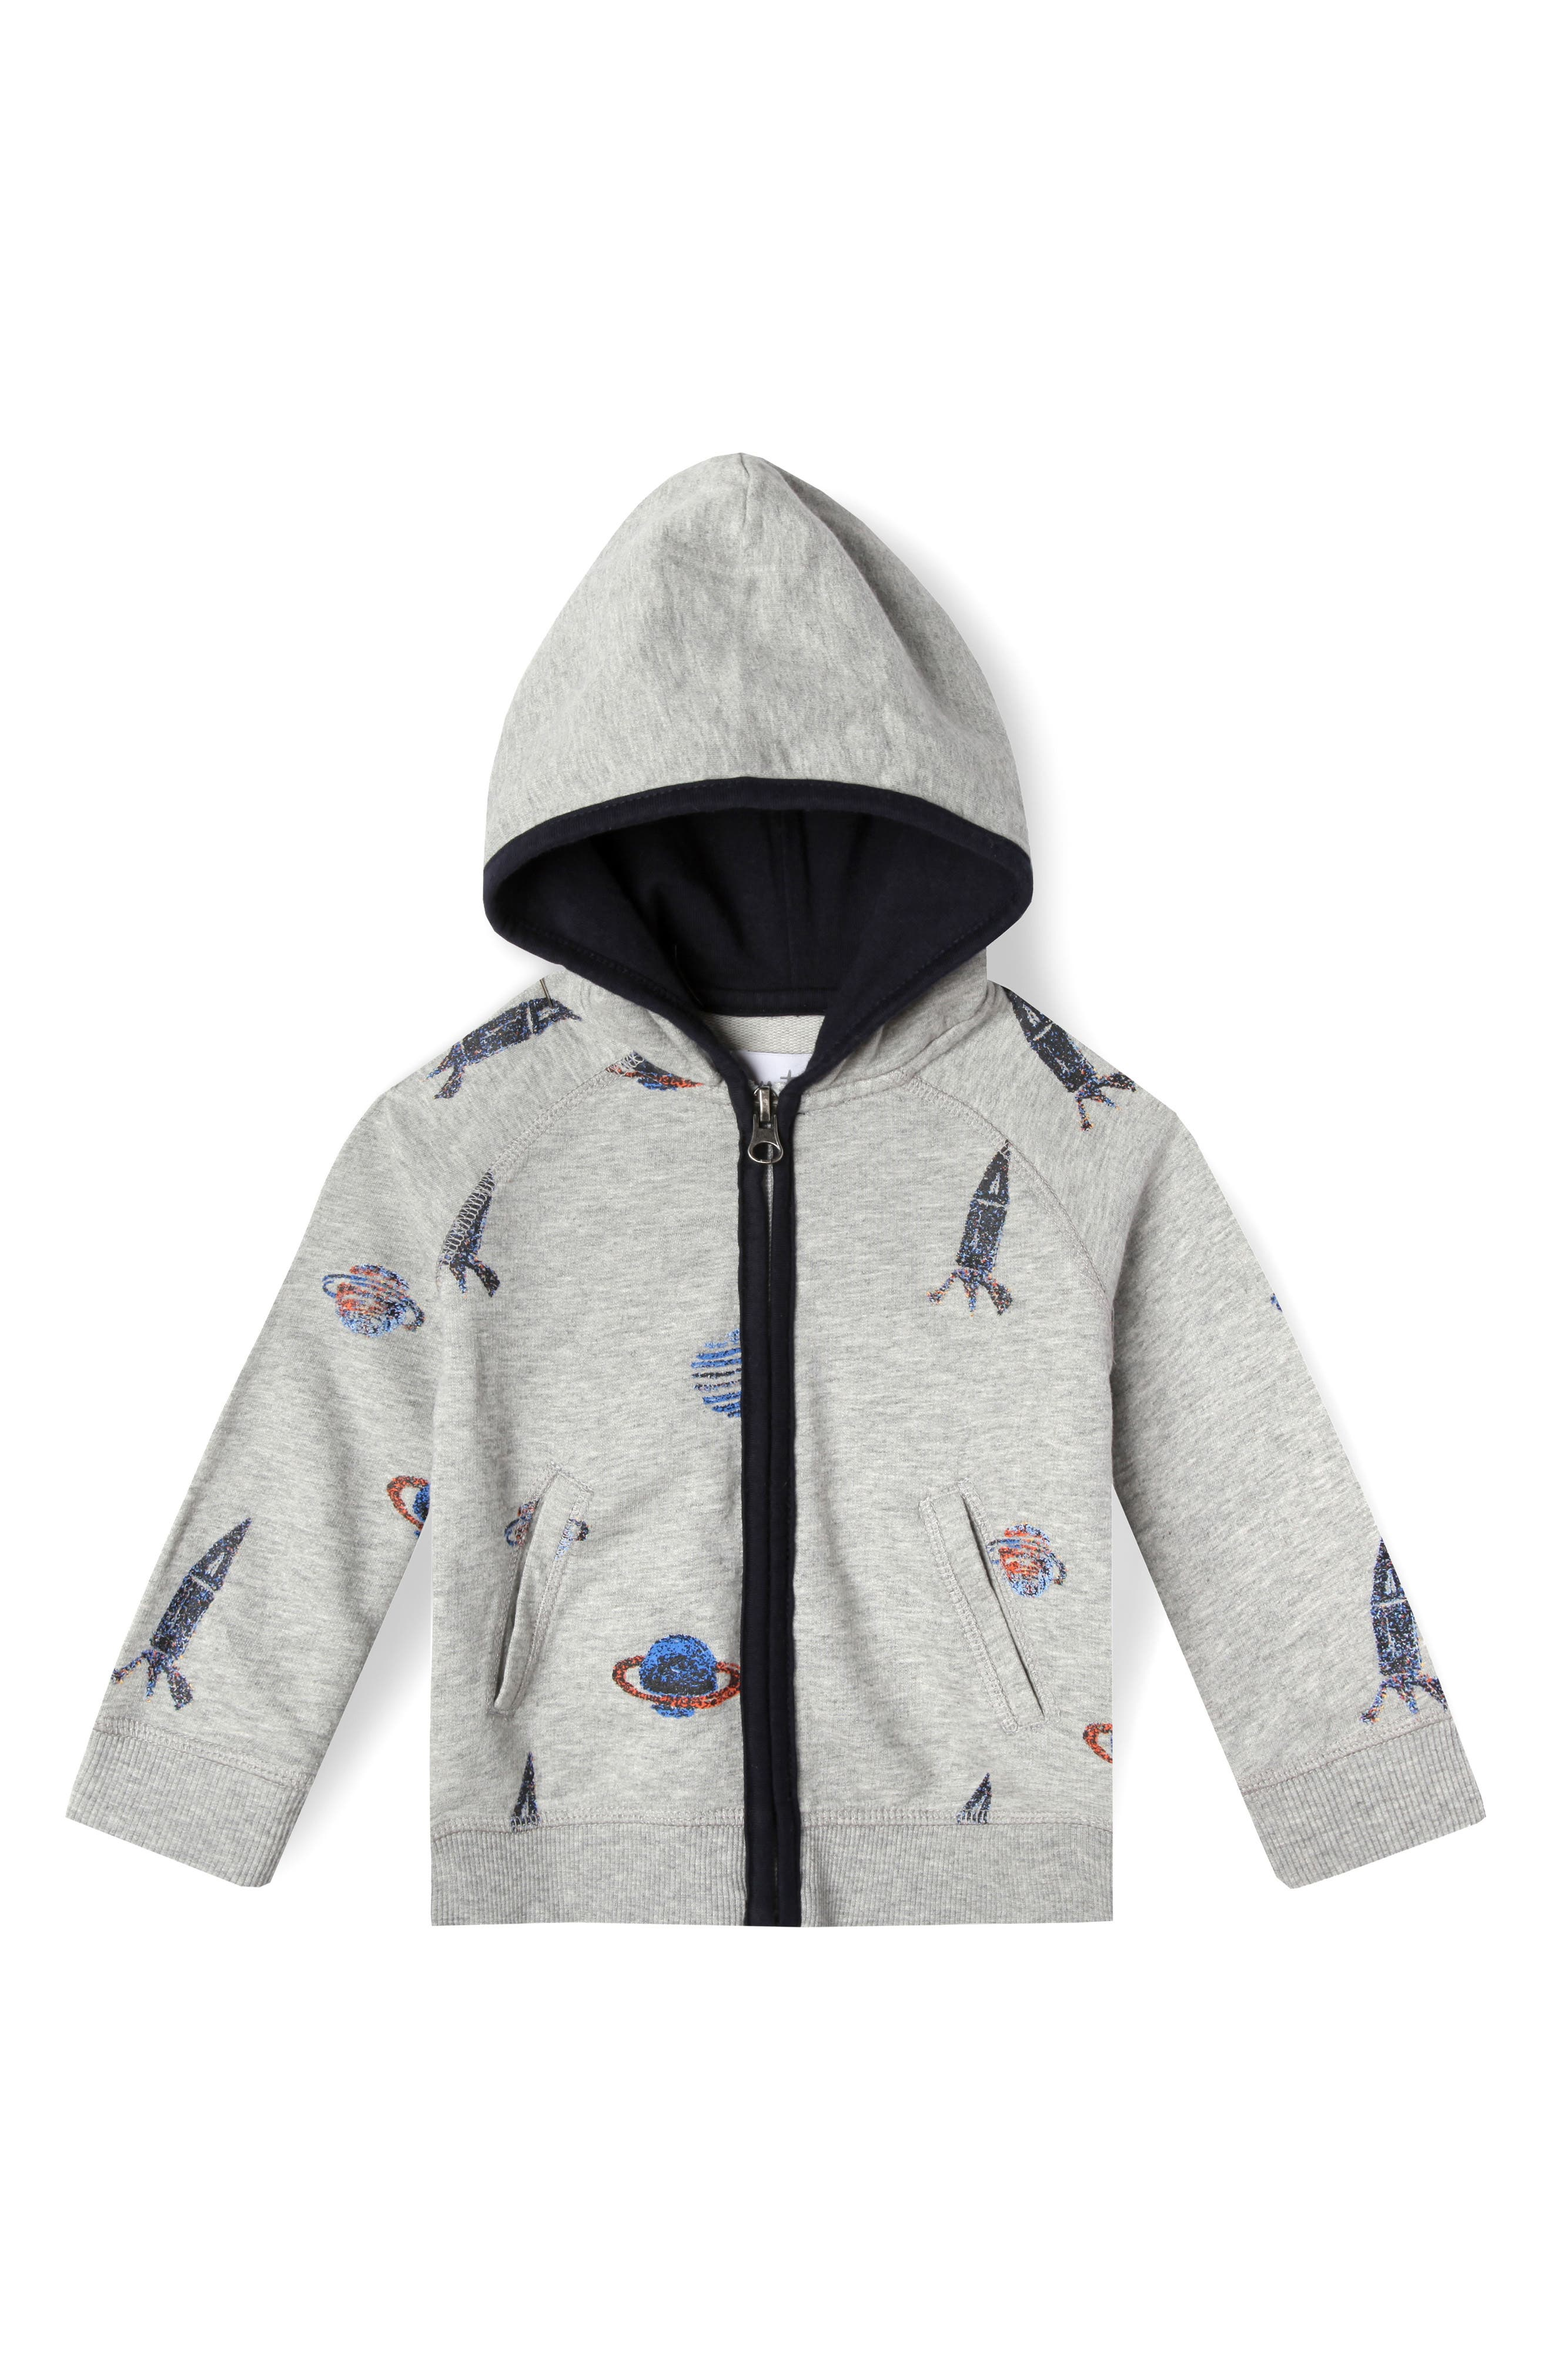 Alternate Image 1 Selected - Art & Eden Astro Organic Cotton Hoodie (Baby Boys)